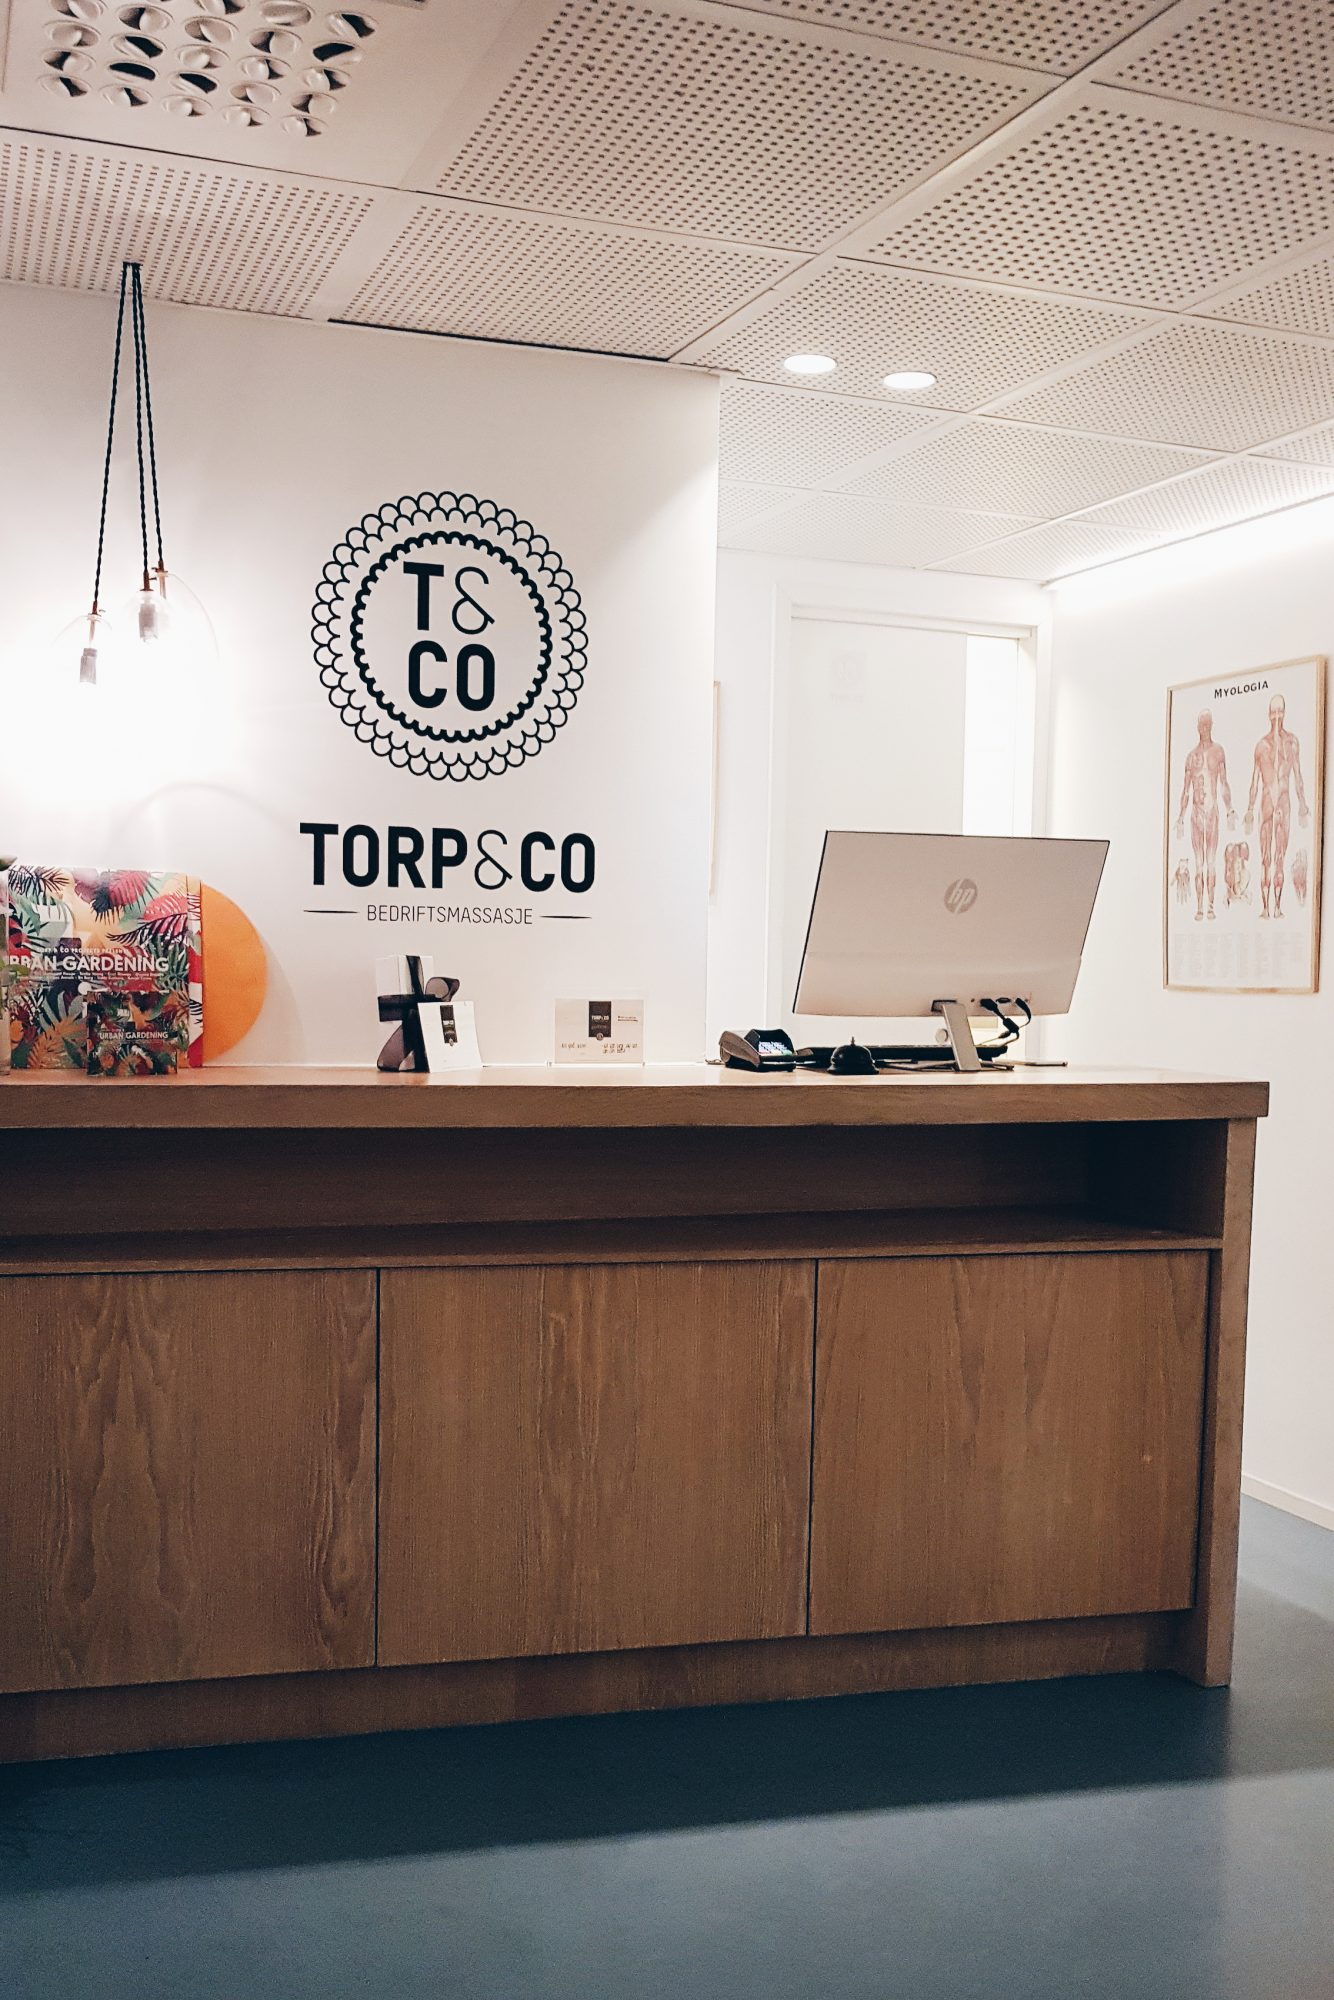 "A photo of a reception area showing a computer perched on the reception desk alongside the company logo which reads ""Torp&Co - bedriftsmassasje"""